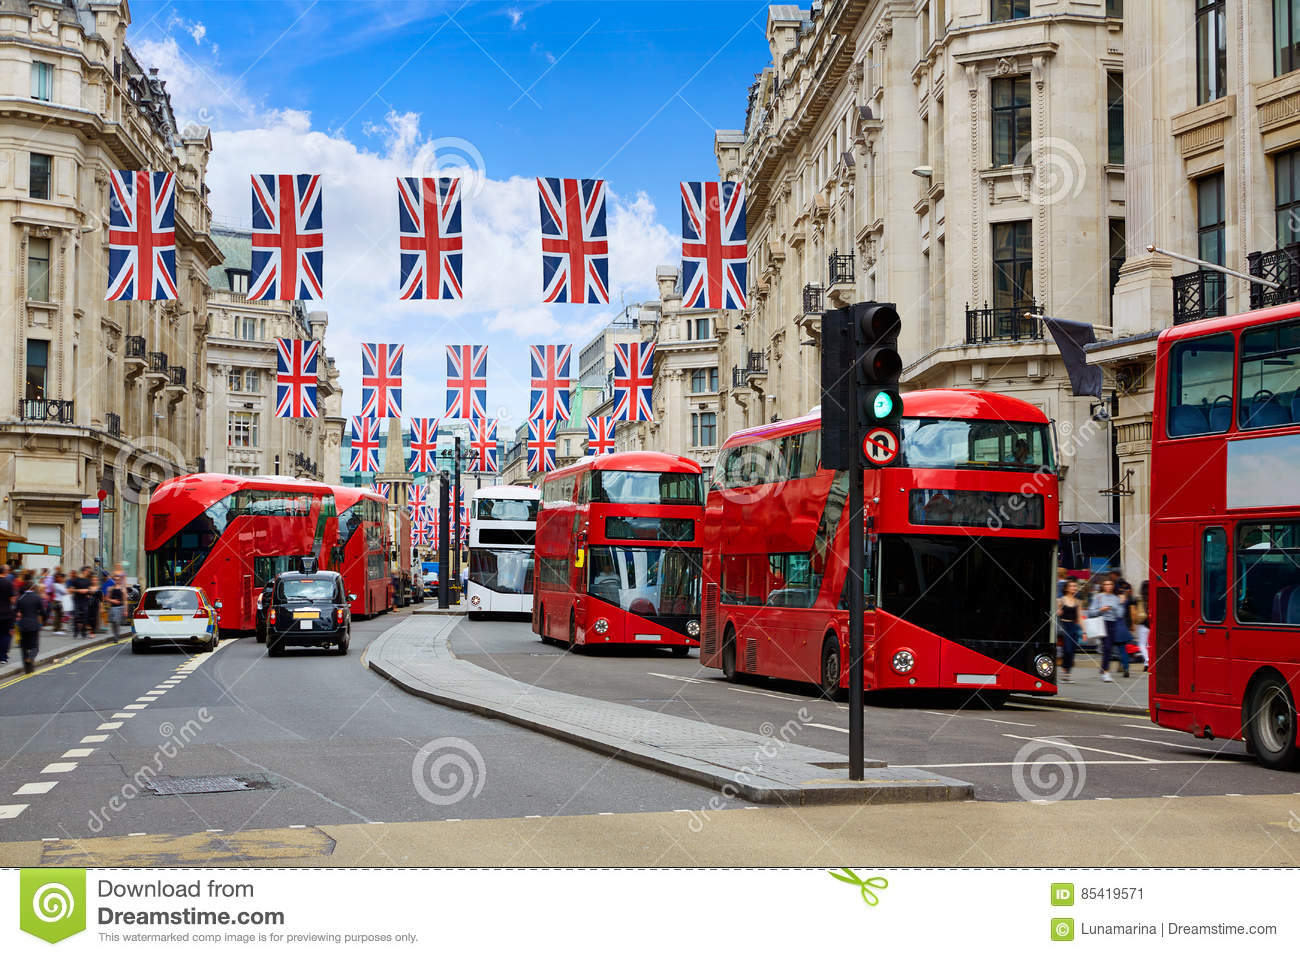 Download London Regent Street W1 Westminster In UK Stock Image - Image of place, sightseeing: 85419571